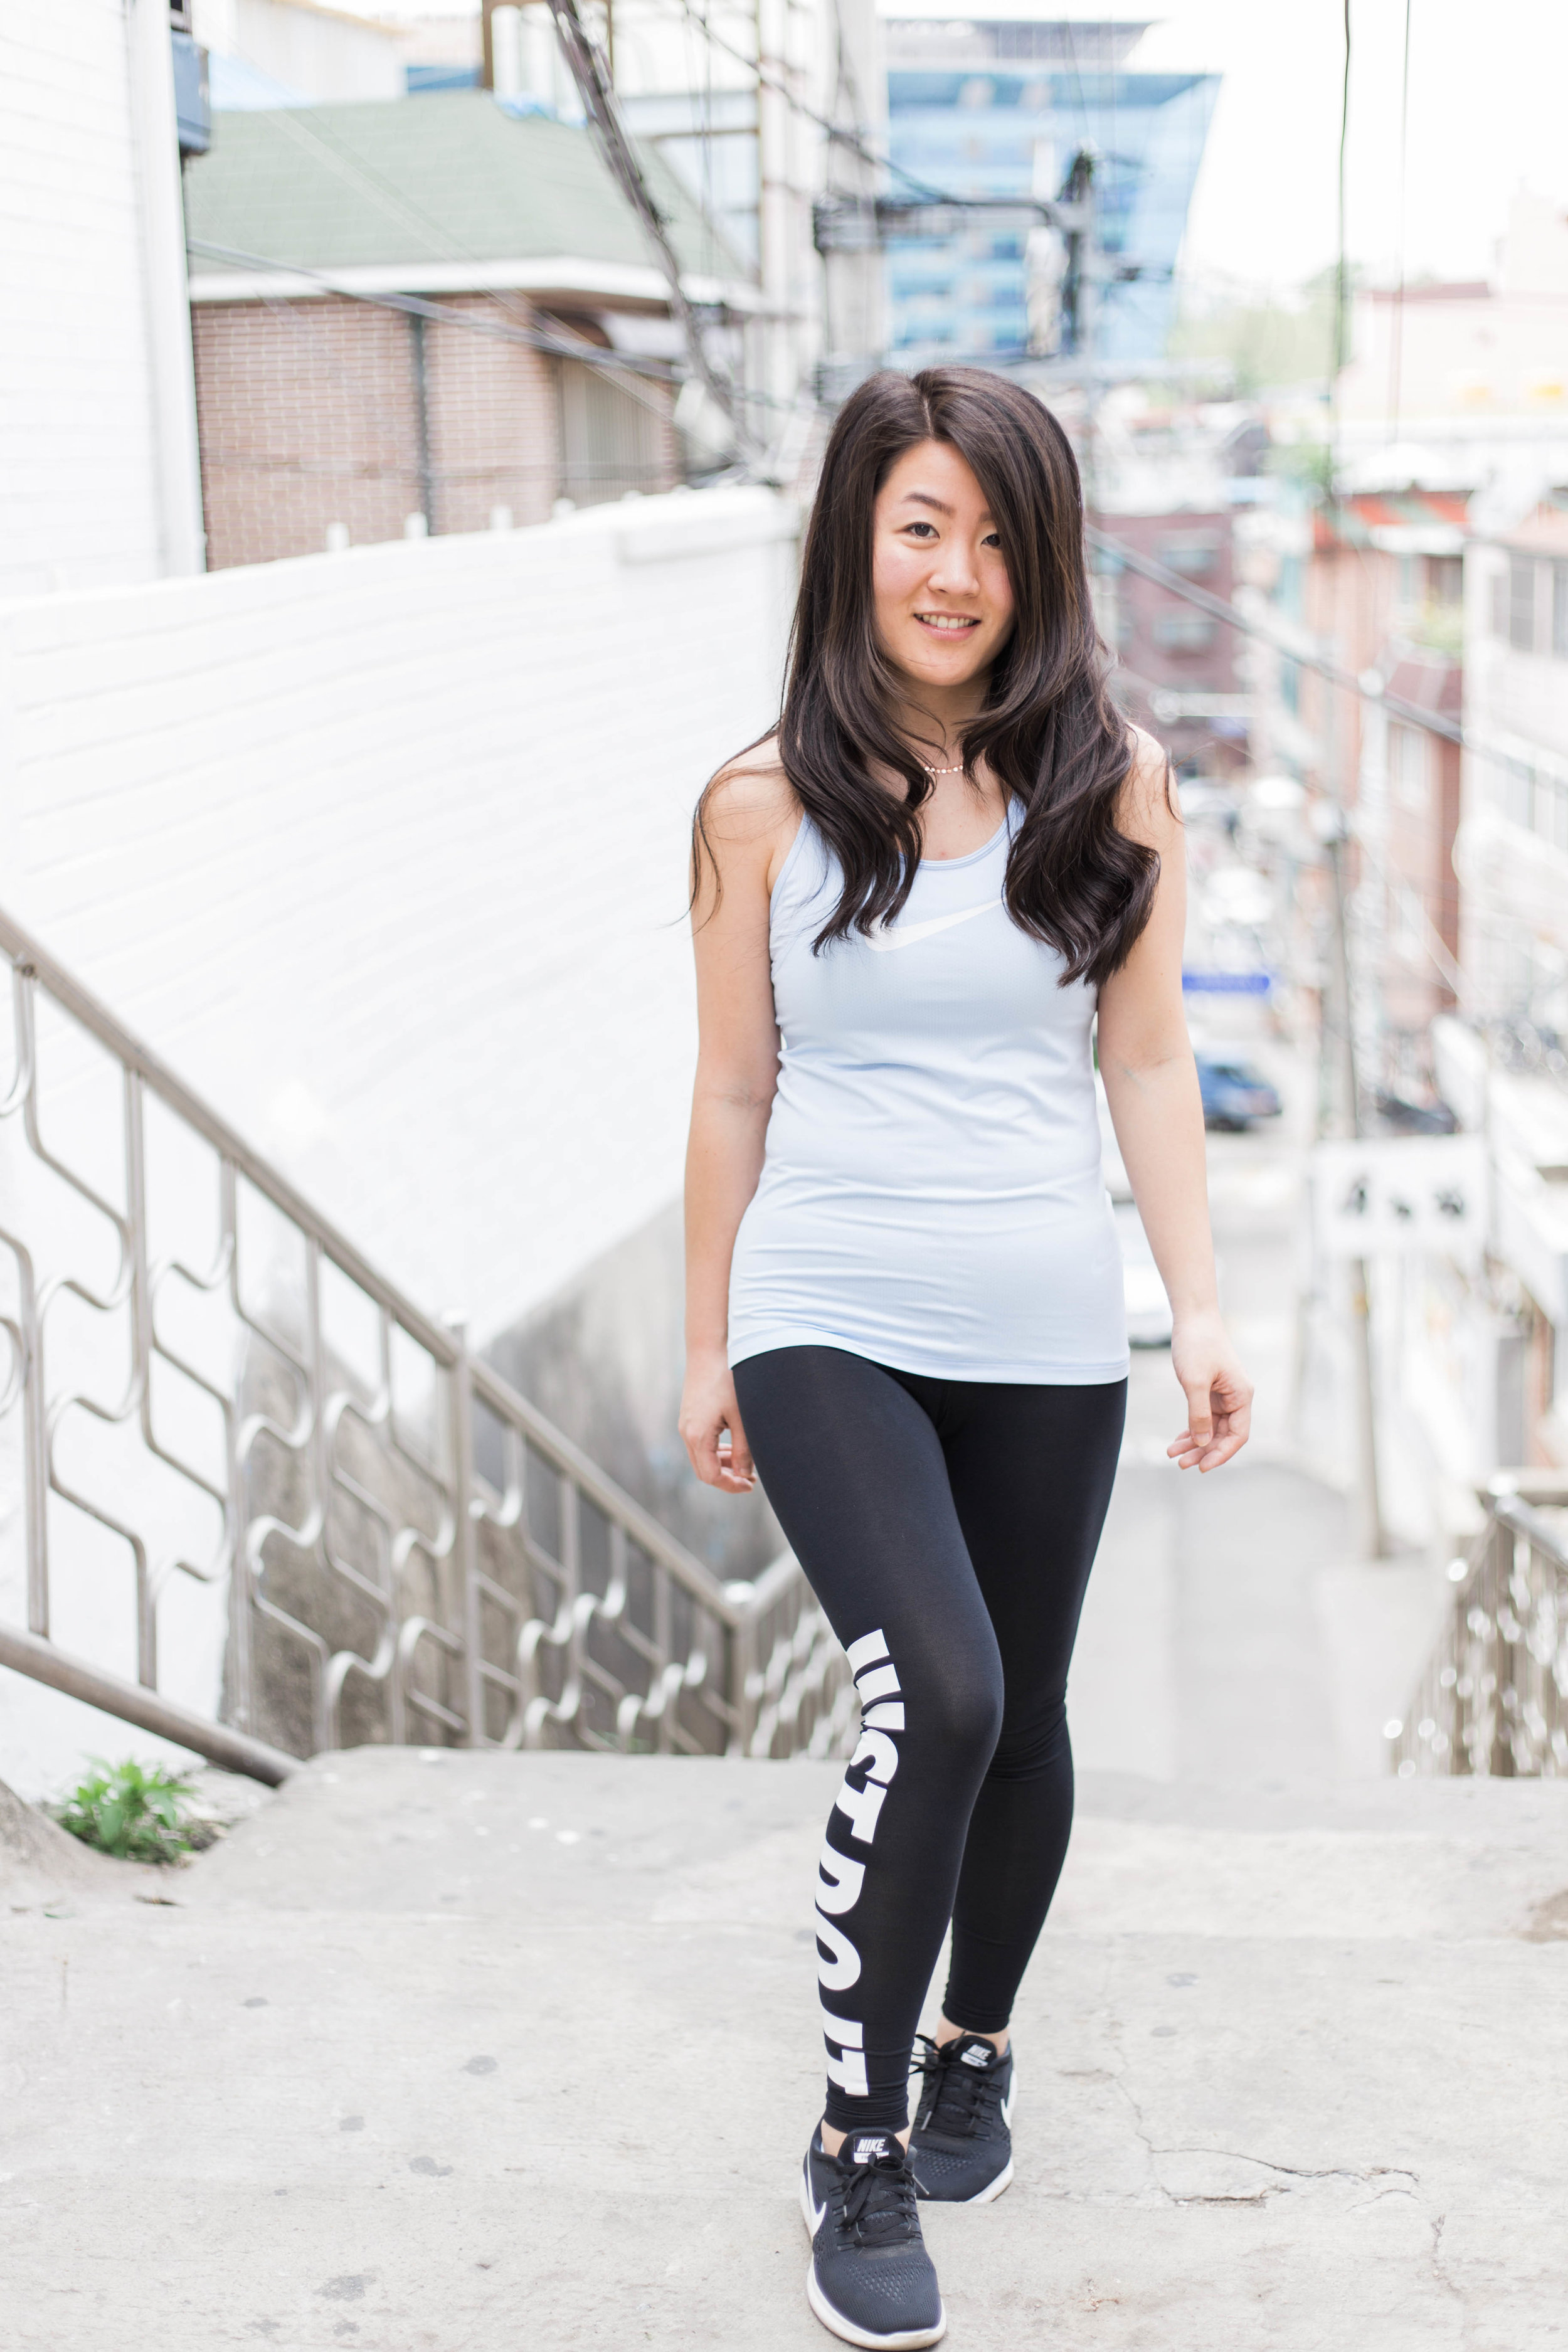 Habits to Make and Break and Where I Find Inspiration | On the Street Where We Live ( aretherelilactrees.com )  Nike, fitness, wellness